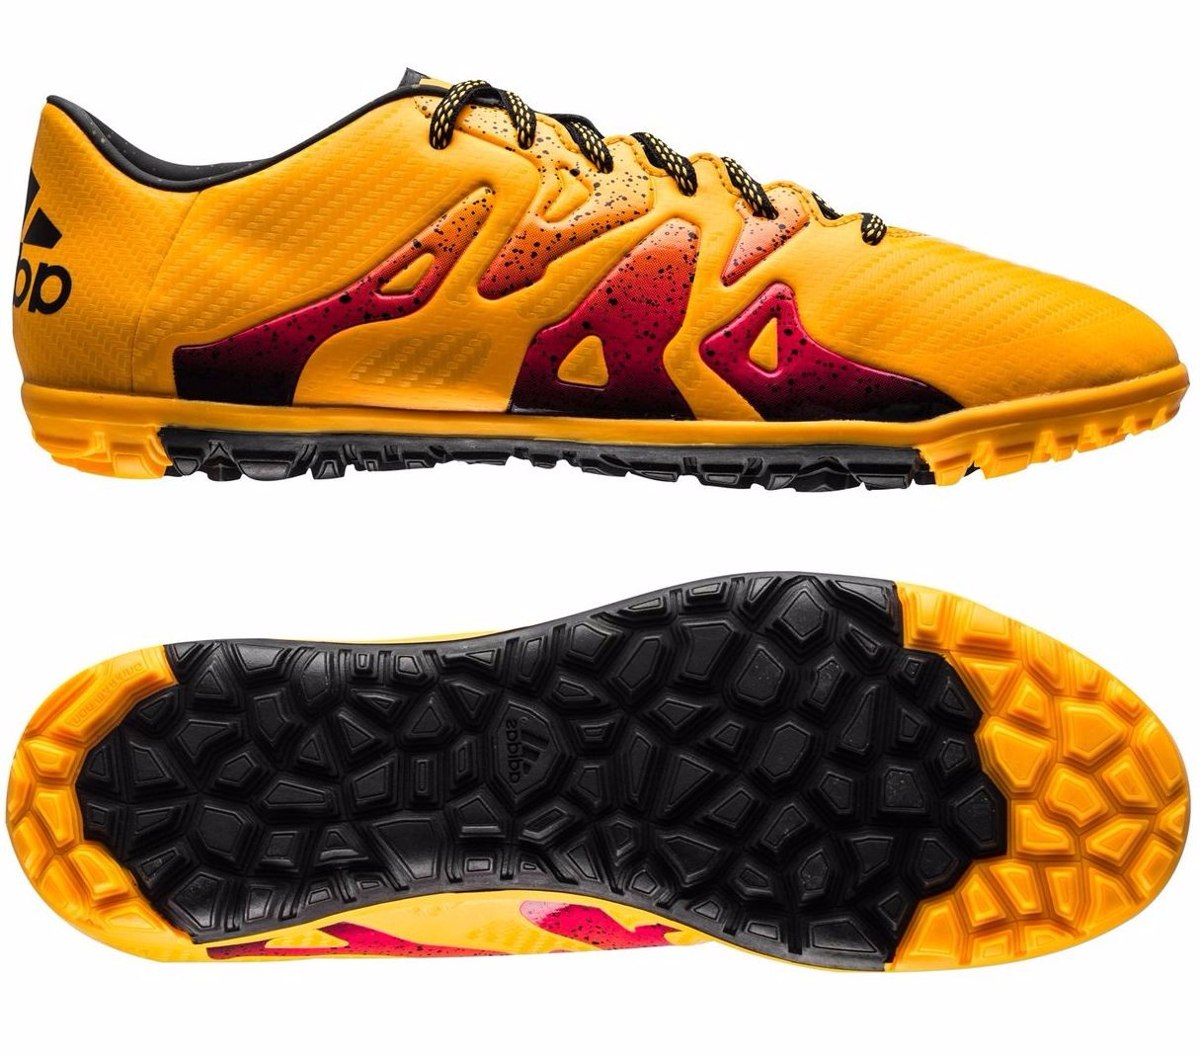 low priced 633be e951a adidas x 15.3 tf